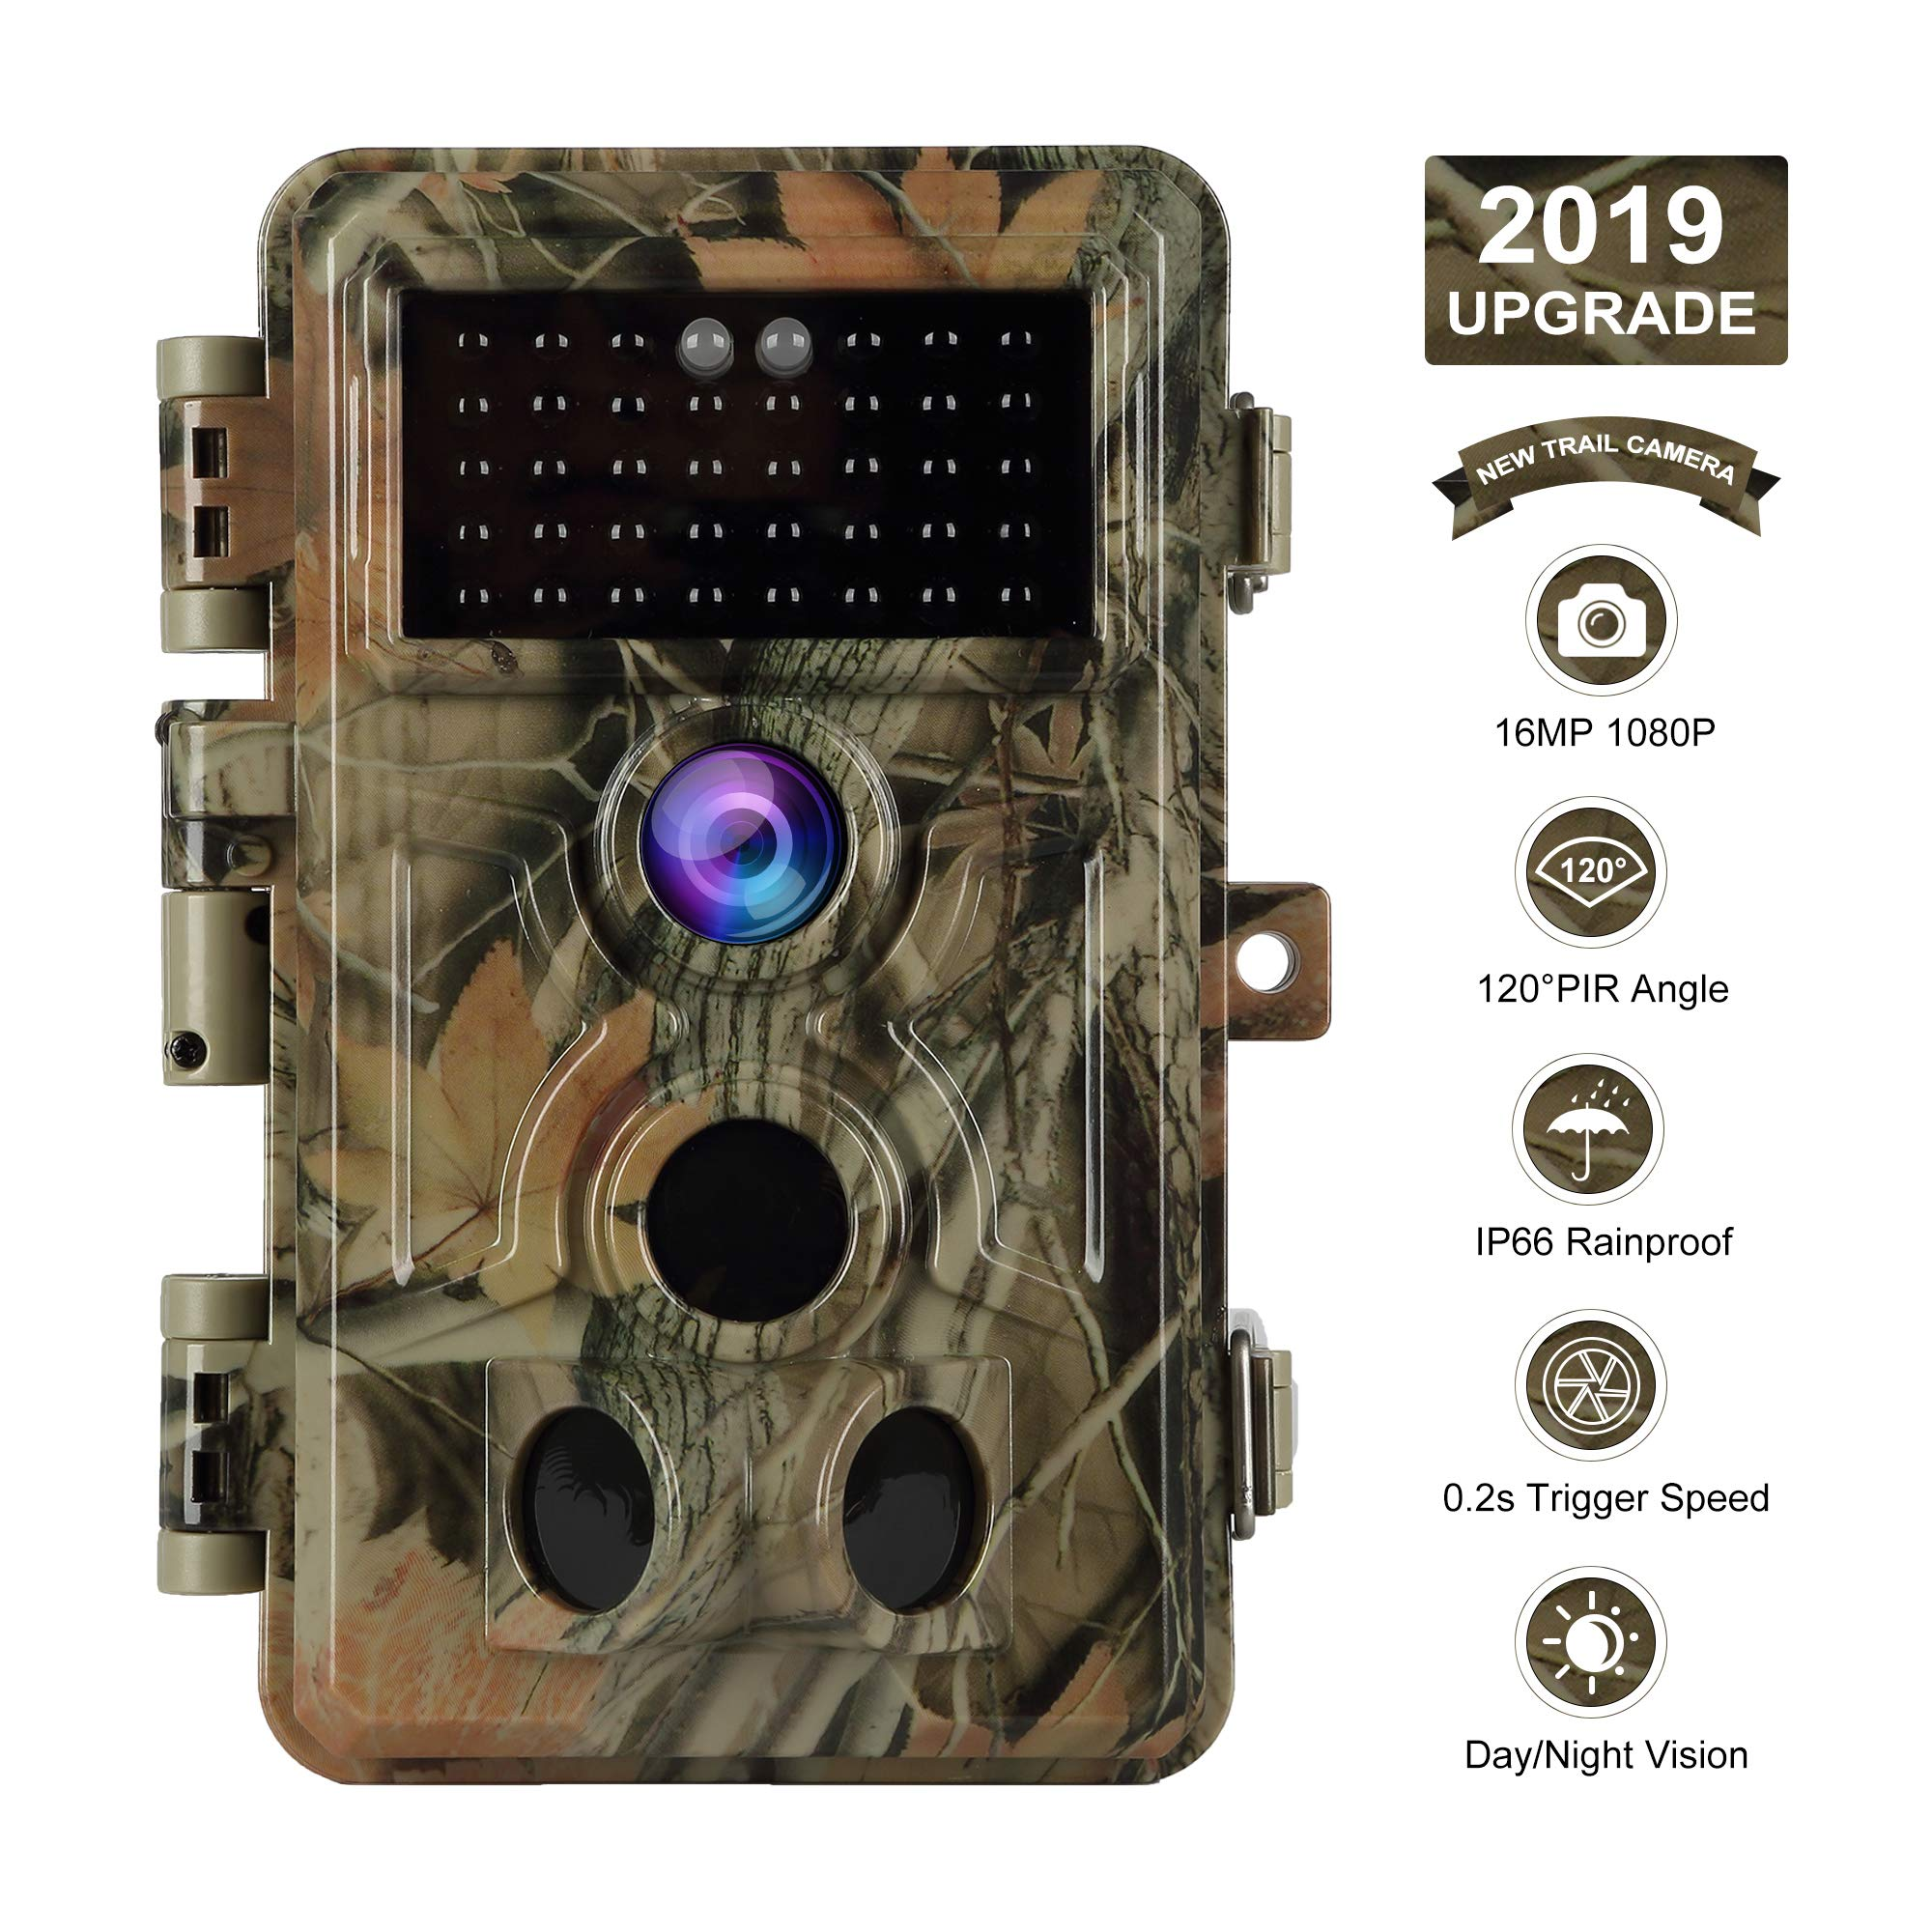 【2019 Upgrade】 Trail Camera 16MP 1080P Game Camera with No Glow Night Vision Up to 65ft 0.2s Trigger Time Motion Activated 2.4'' Color Screen and Easy Operate Keypad Waterproof Wildlife Hunting Camera by BlazeVideo